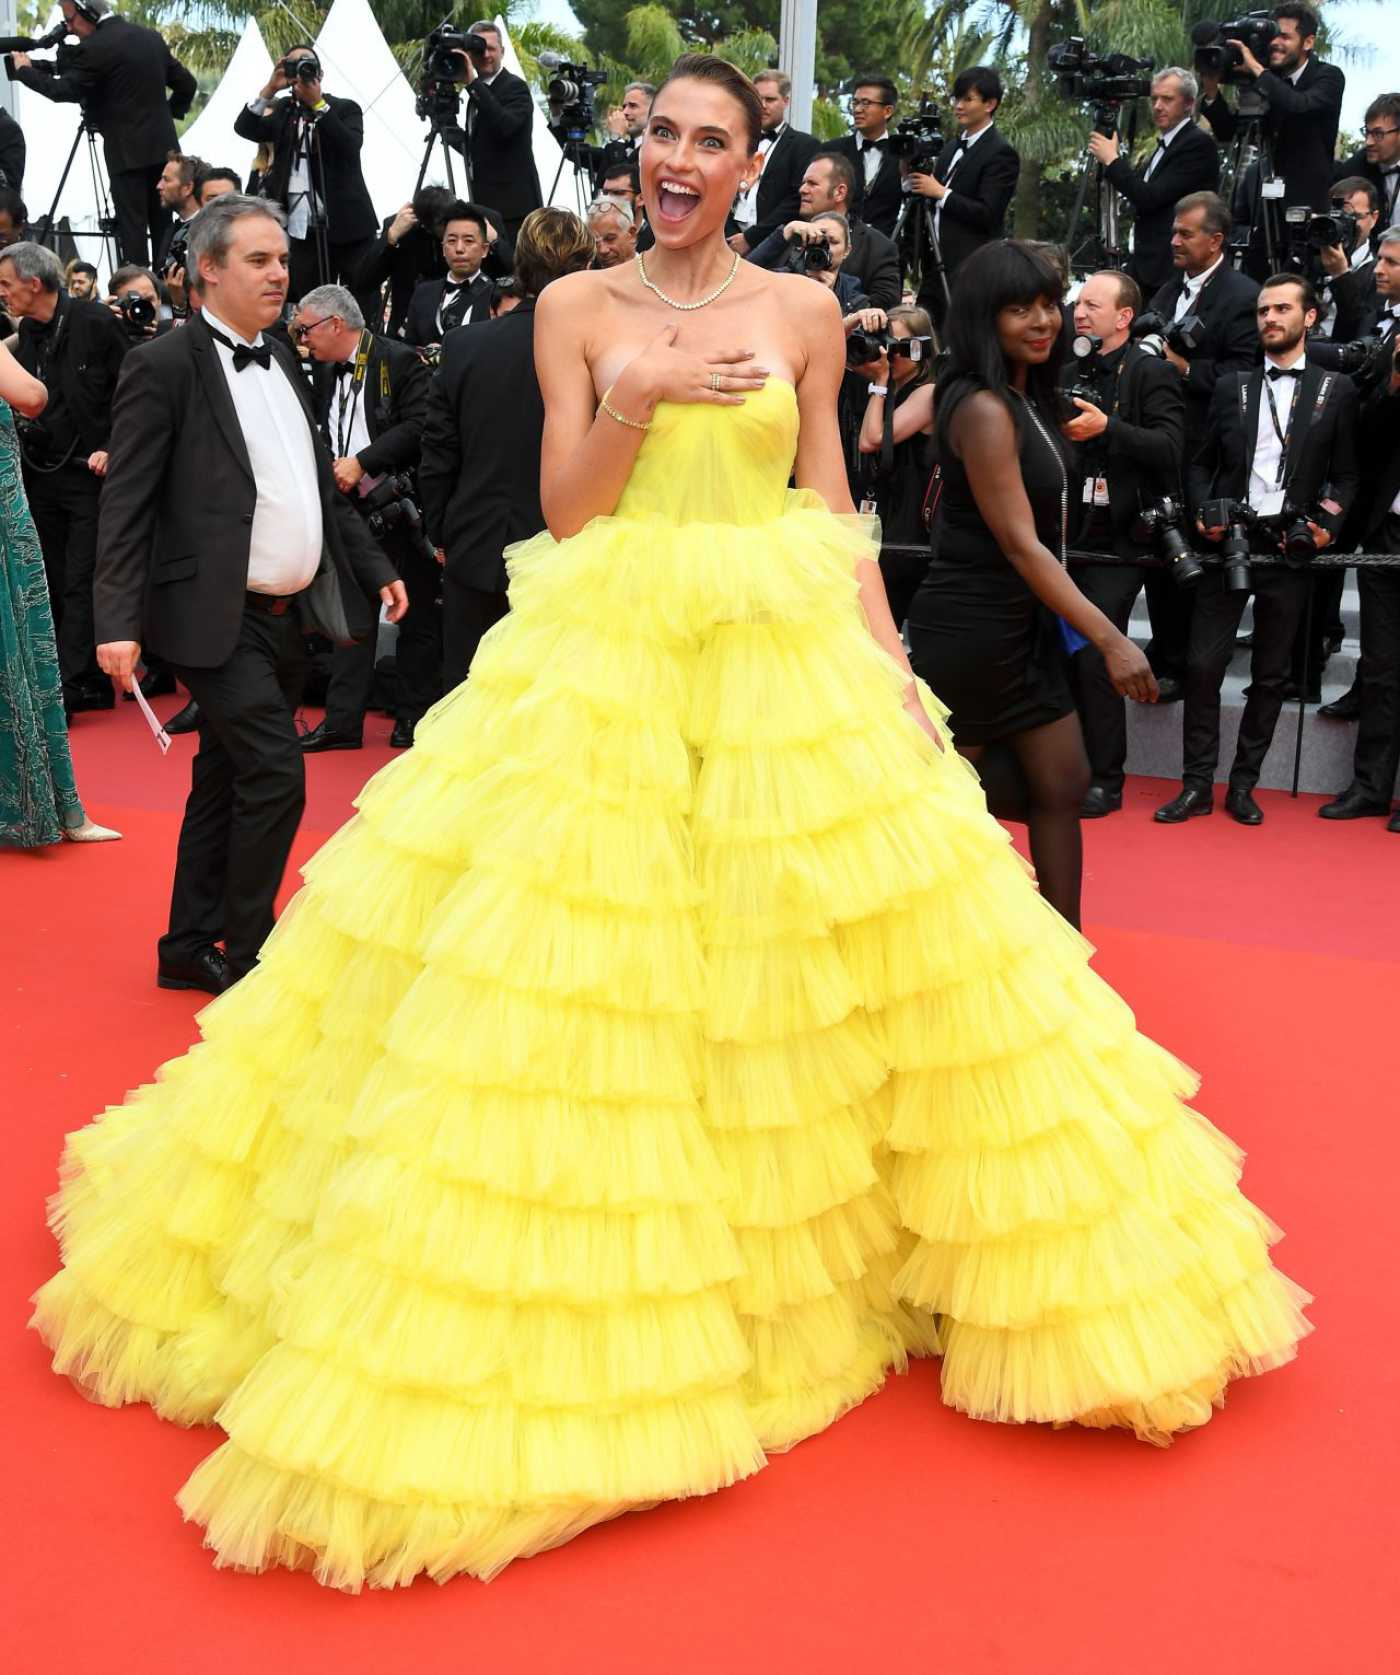 Fernanda Liz Attends Oh Mercy! Screening During the 72nd Annual Cannes Film Festival in Cannes 05/22/2019